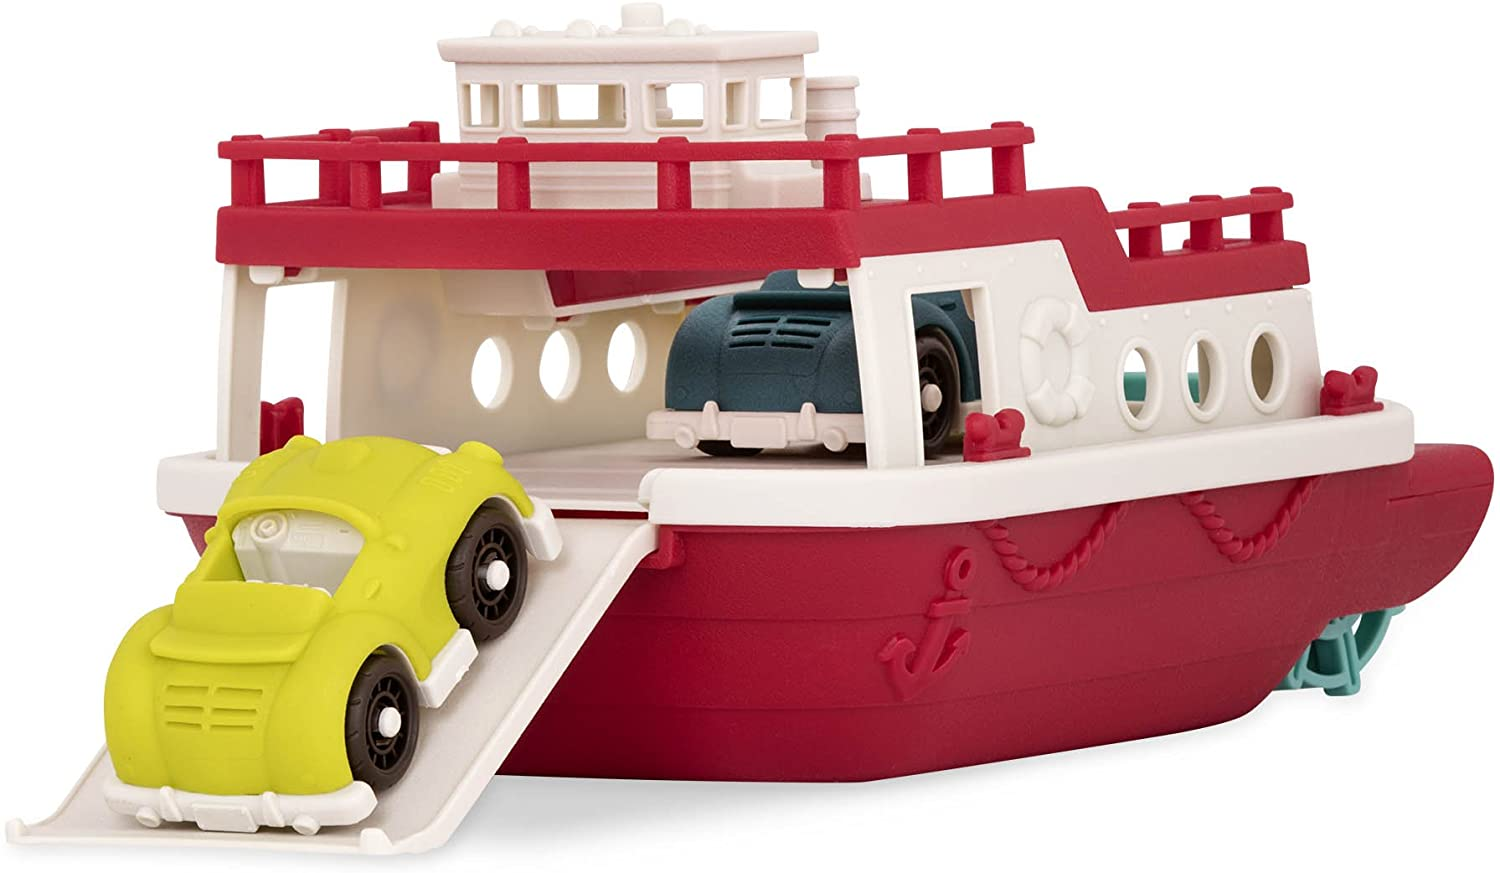 Wonder Wheels by Battat – Ferry Boat – Floating Bath Toy Boat with Cars For Toddlers Age 1 & Up (3 Pc).